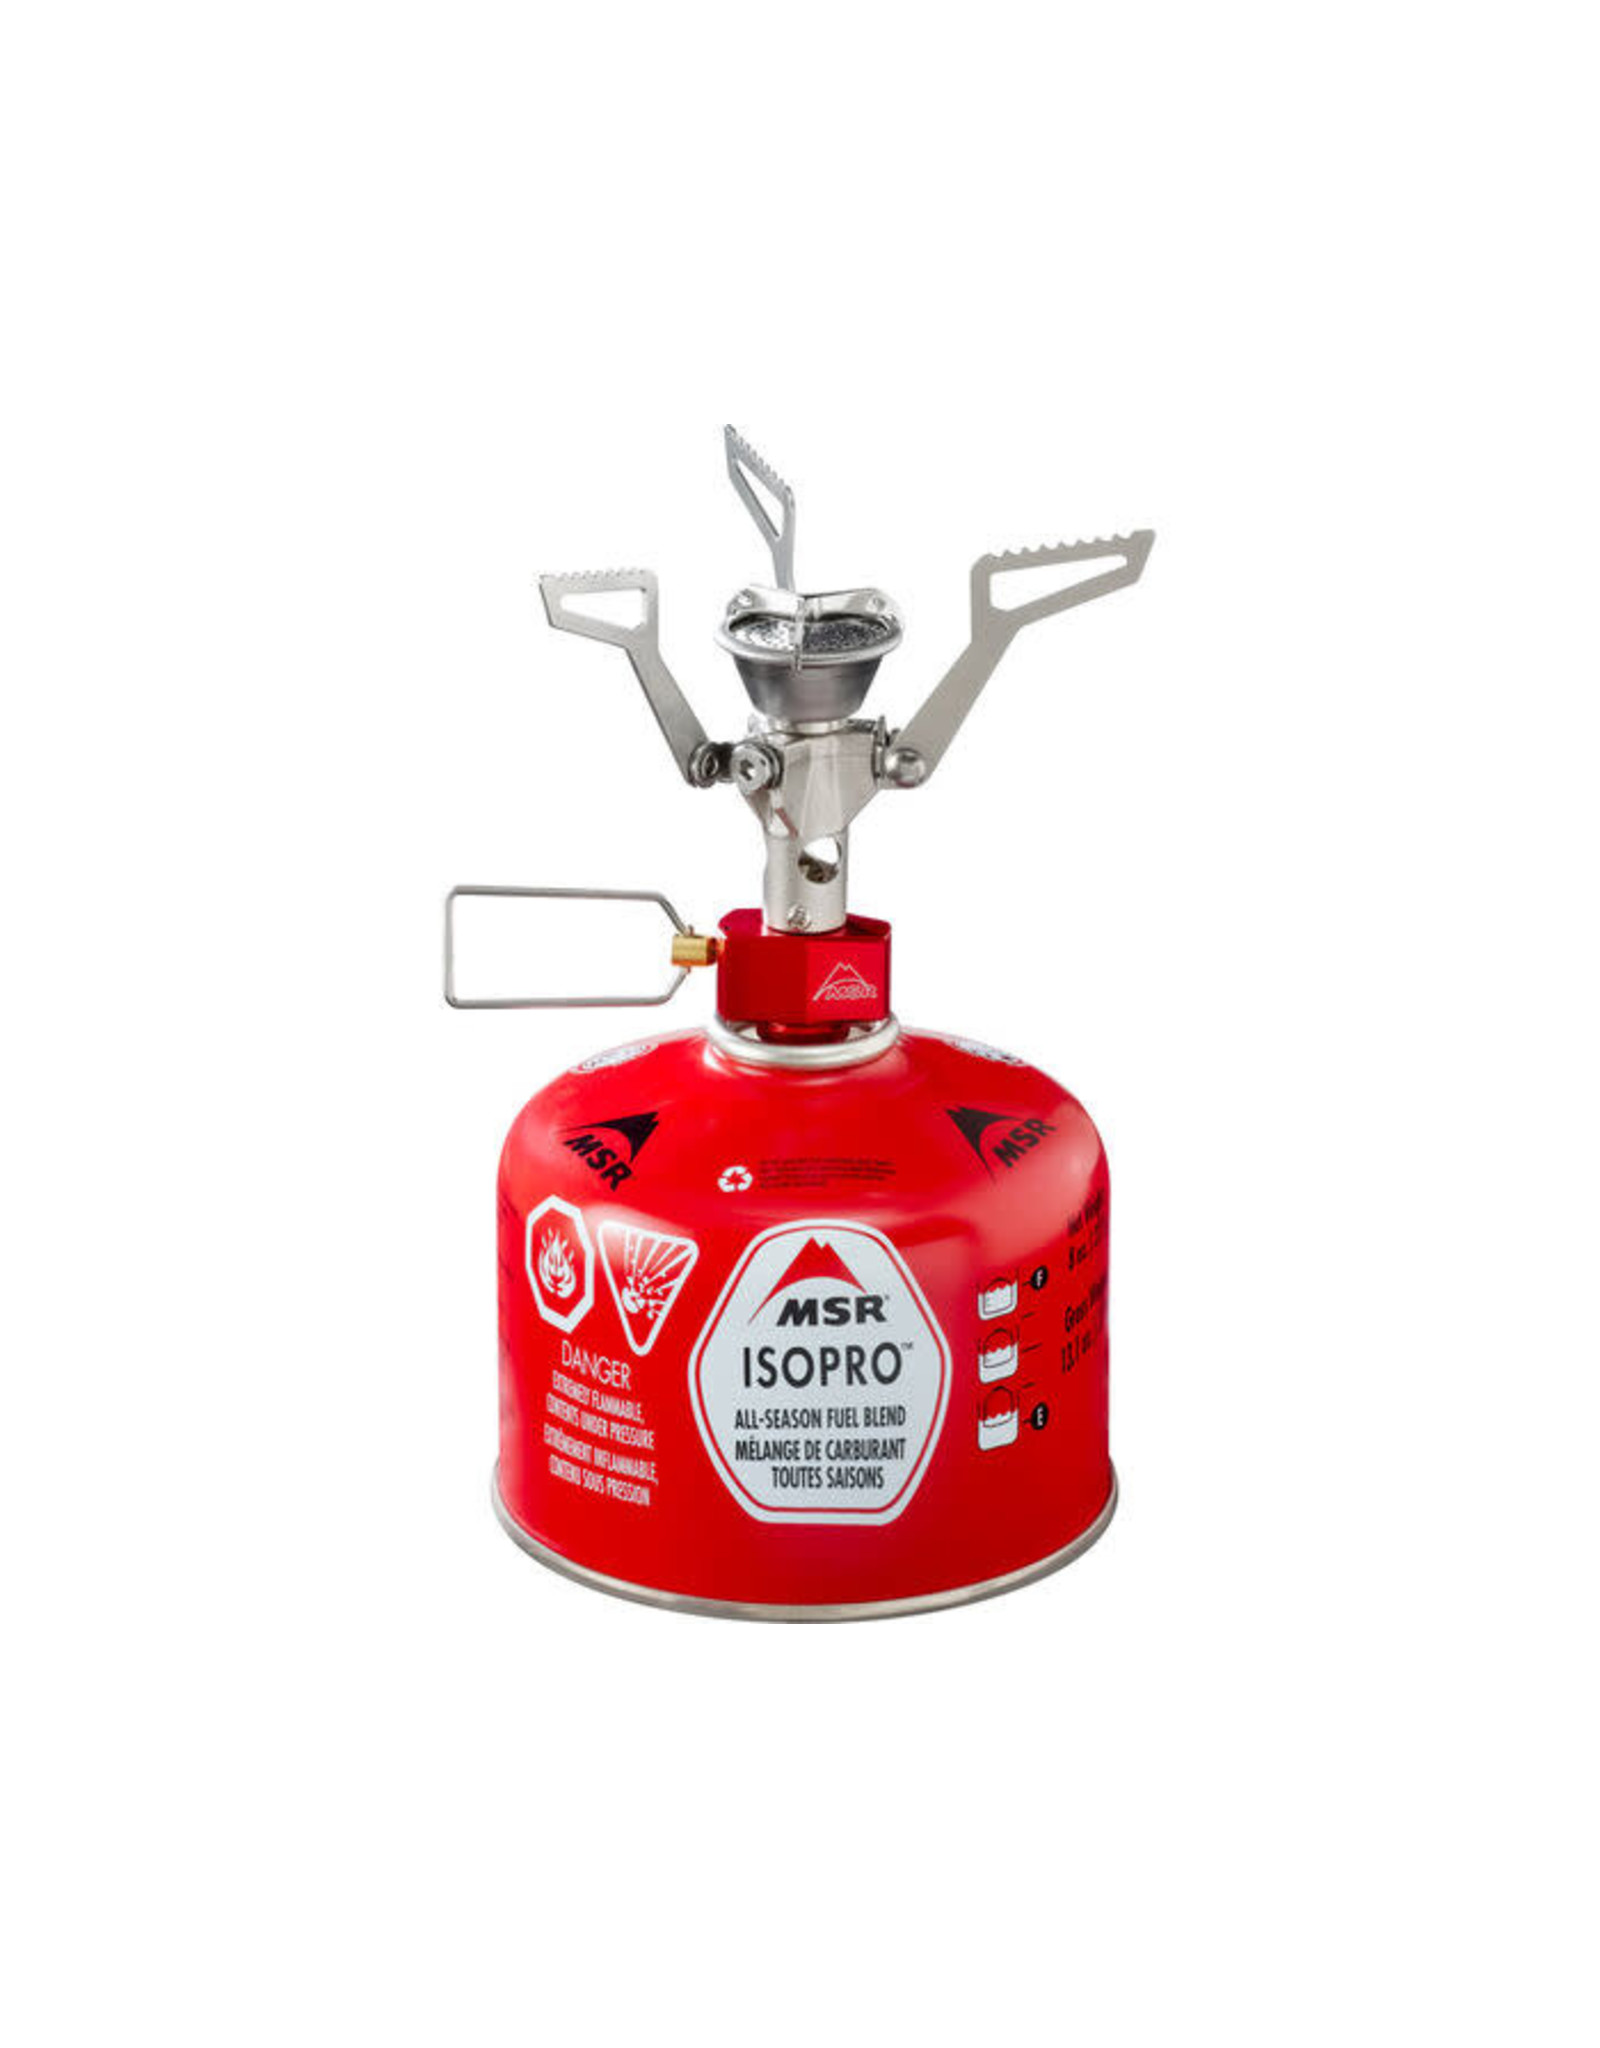 MSR MSR POCKET ROCKET 2 CAMP STOVE #09884